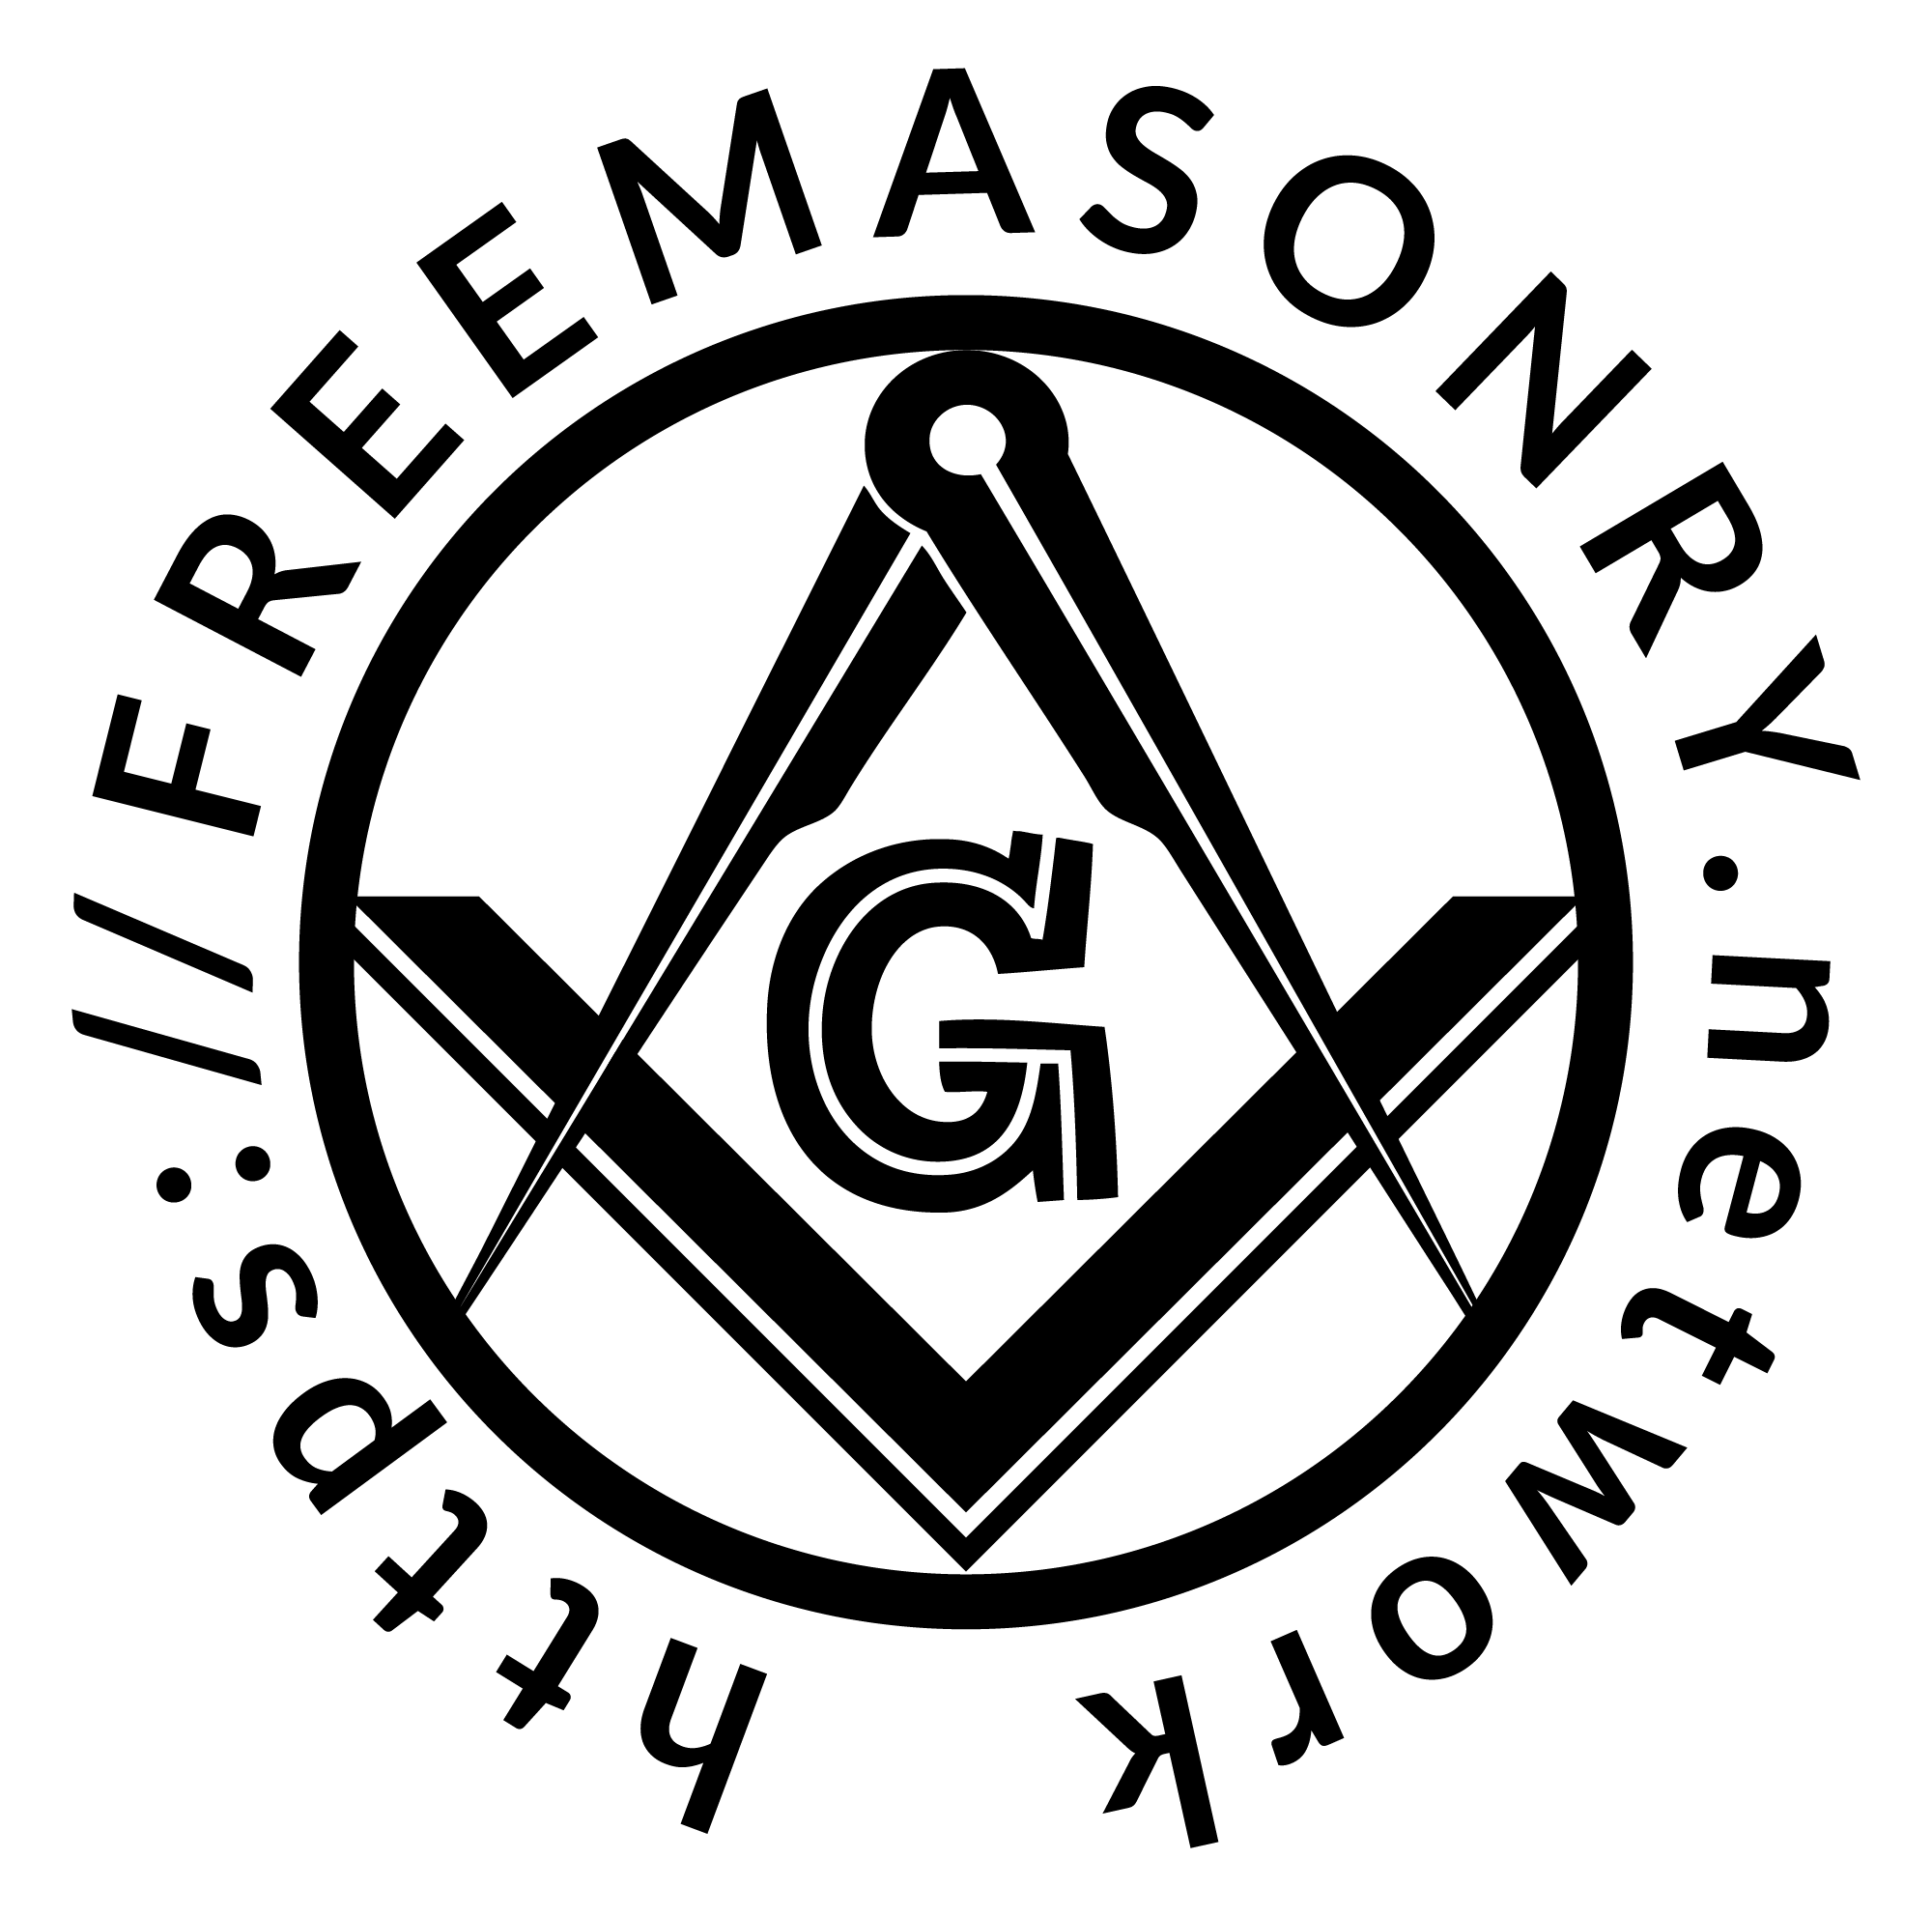 WHAT IS MASONIC TEMPLE?